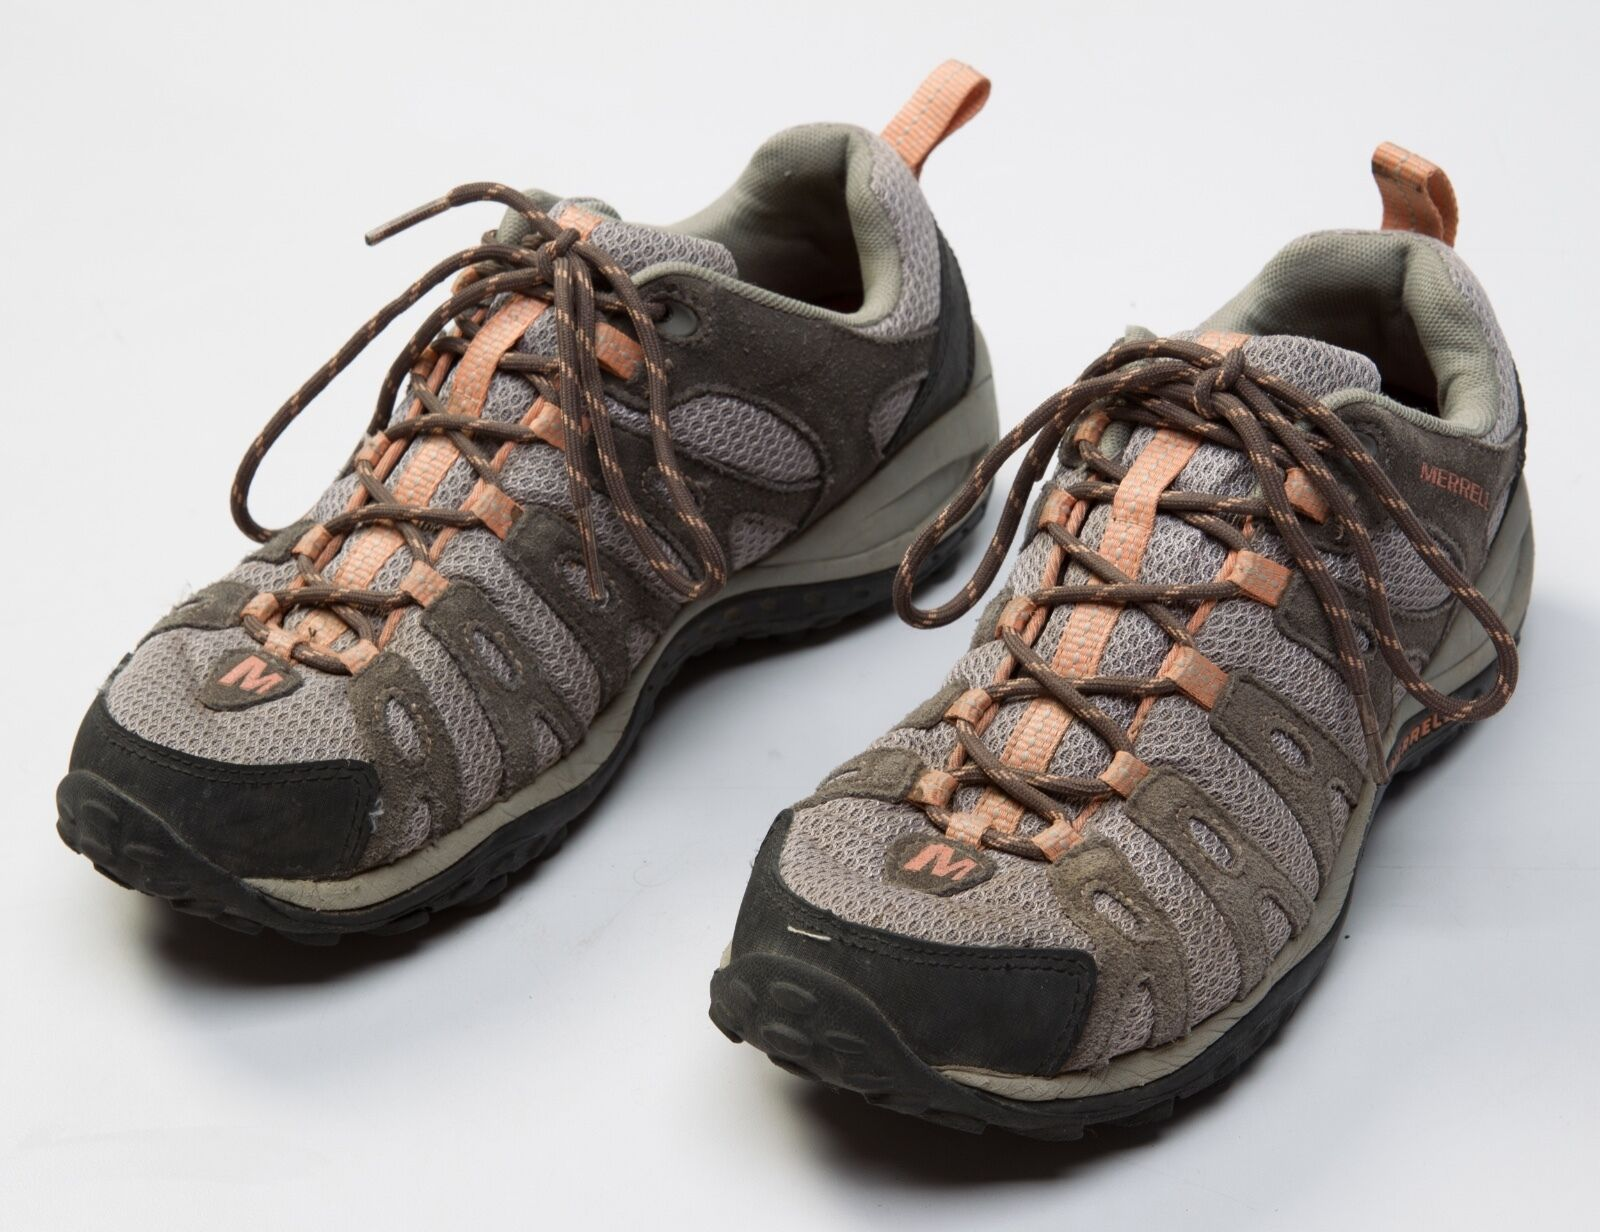 Women's Merrell Hiking Trail Shoes Size US7 US 7 Leather Depart Dark Gull Grey